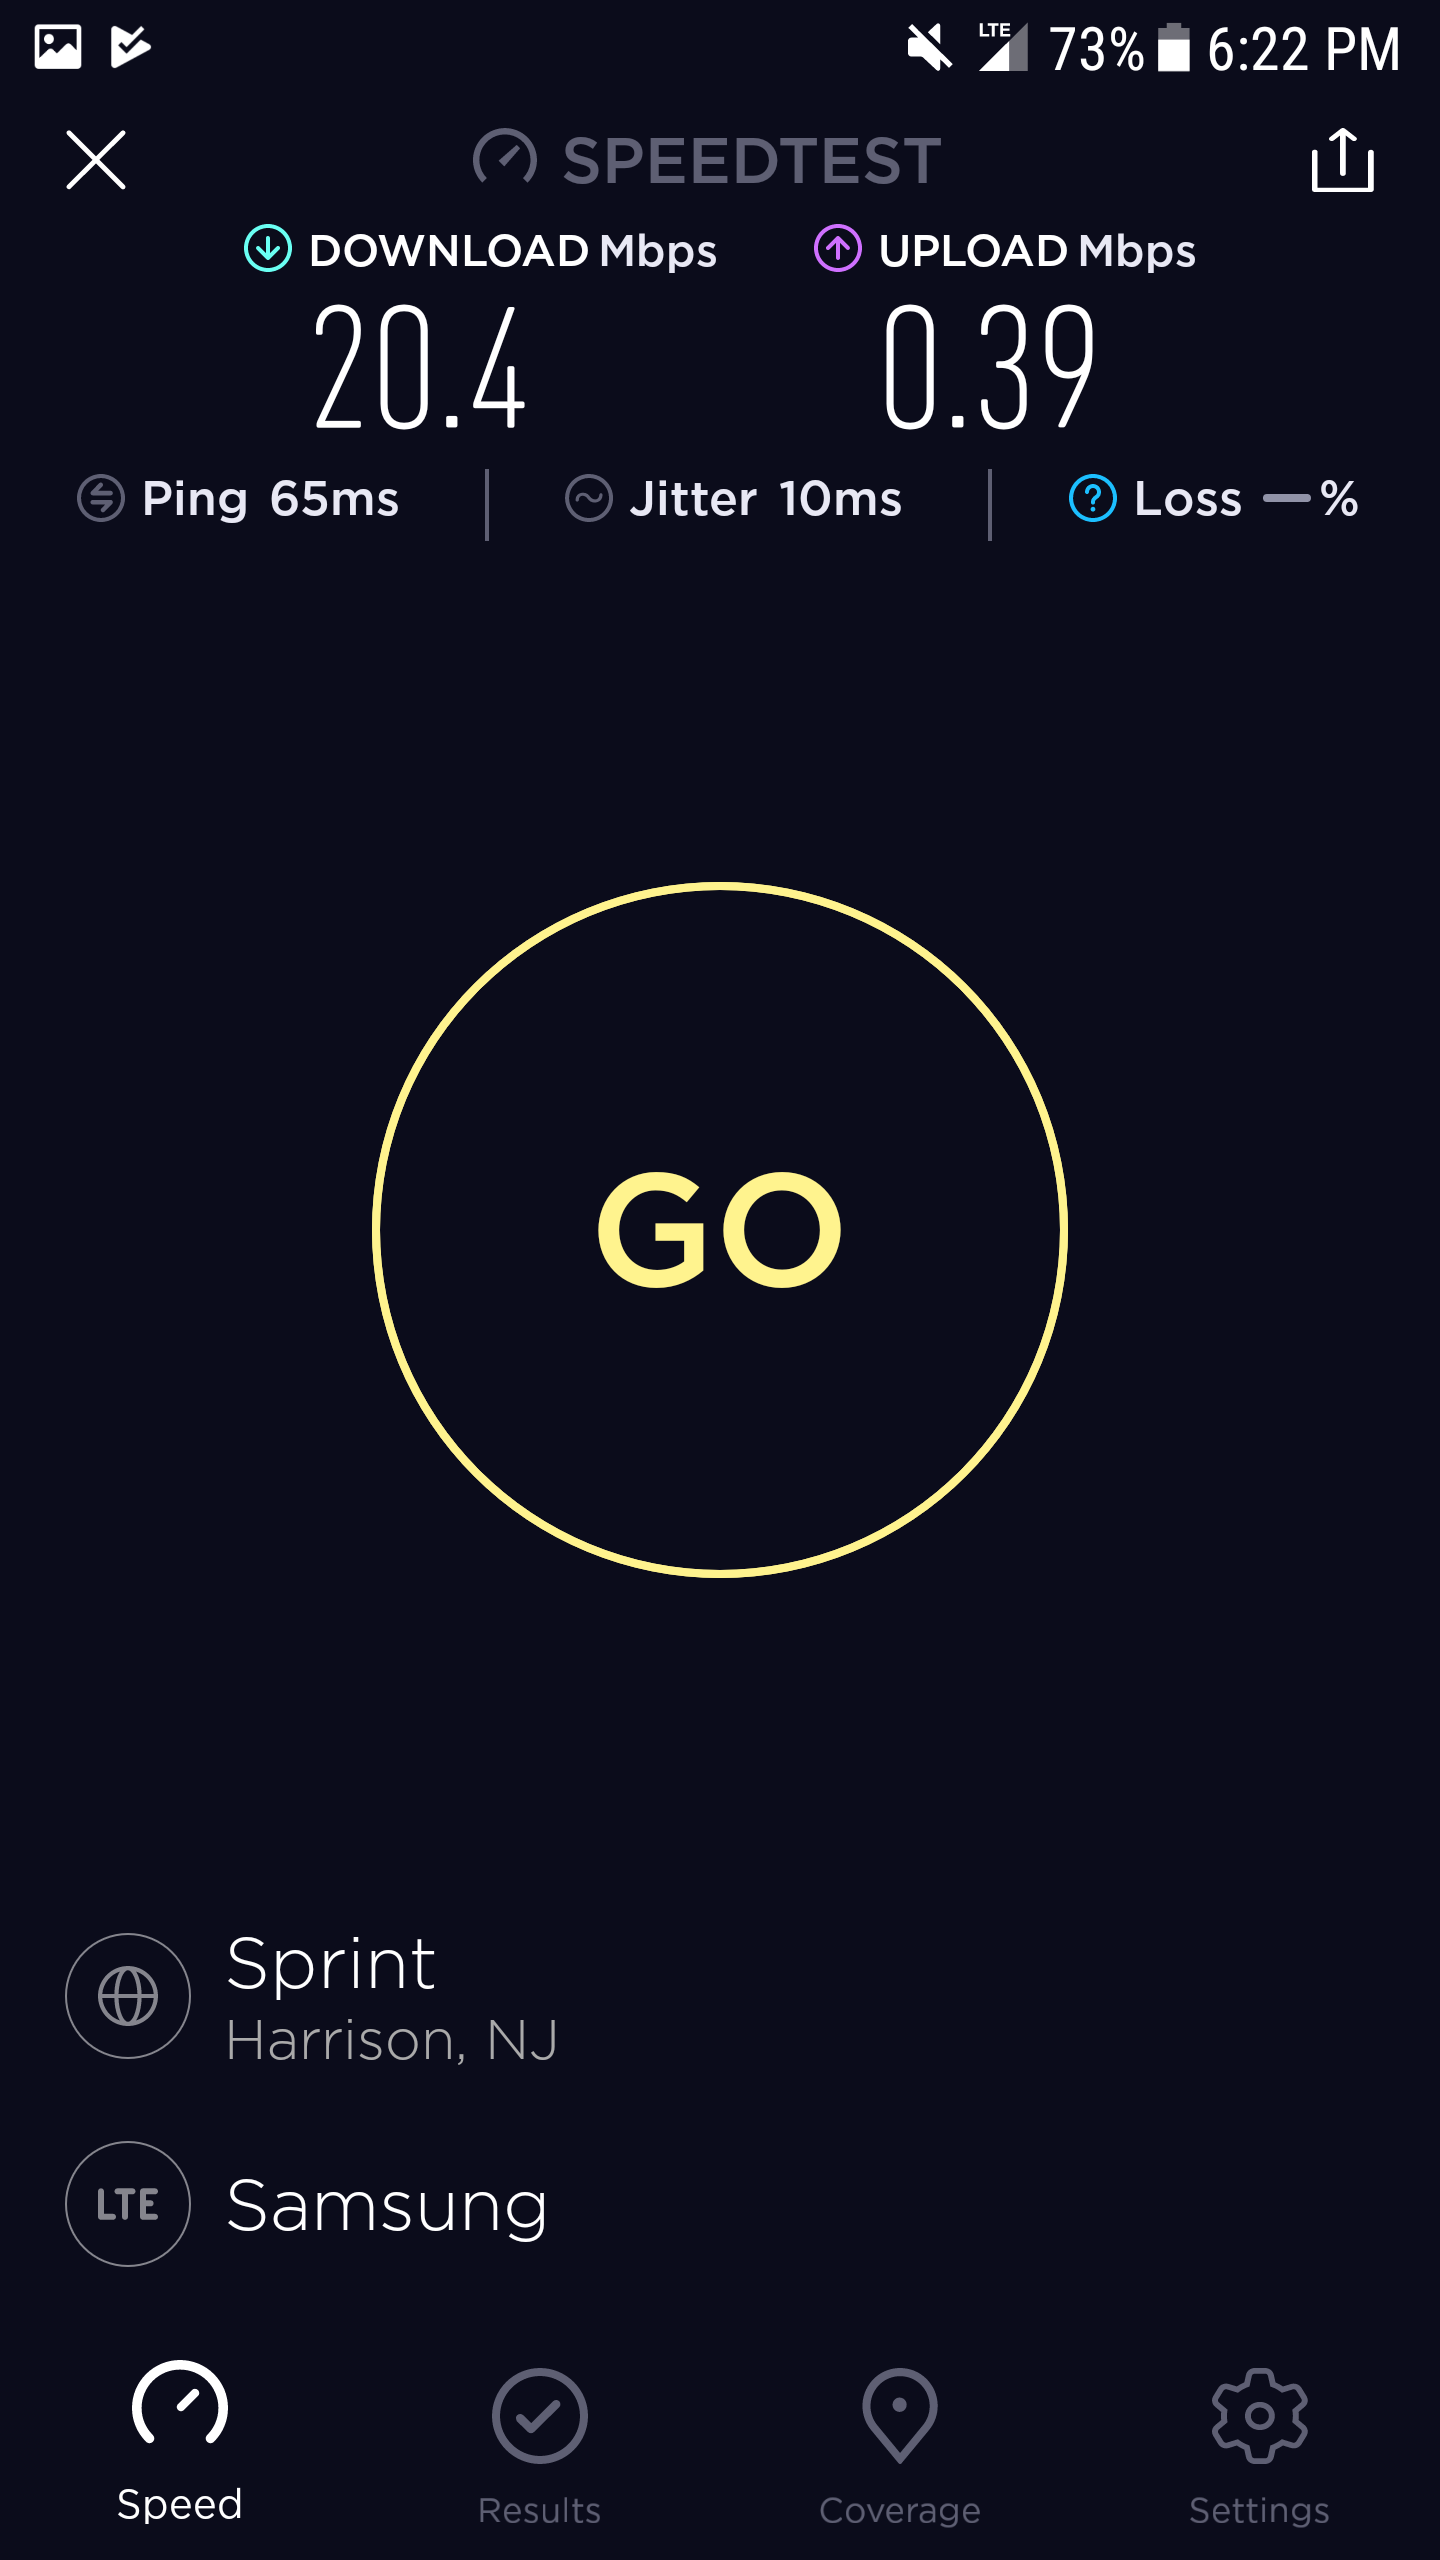 Tello review: An in-depth look at the Sprint MVNO